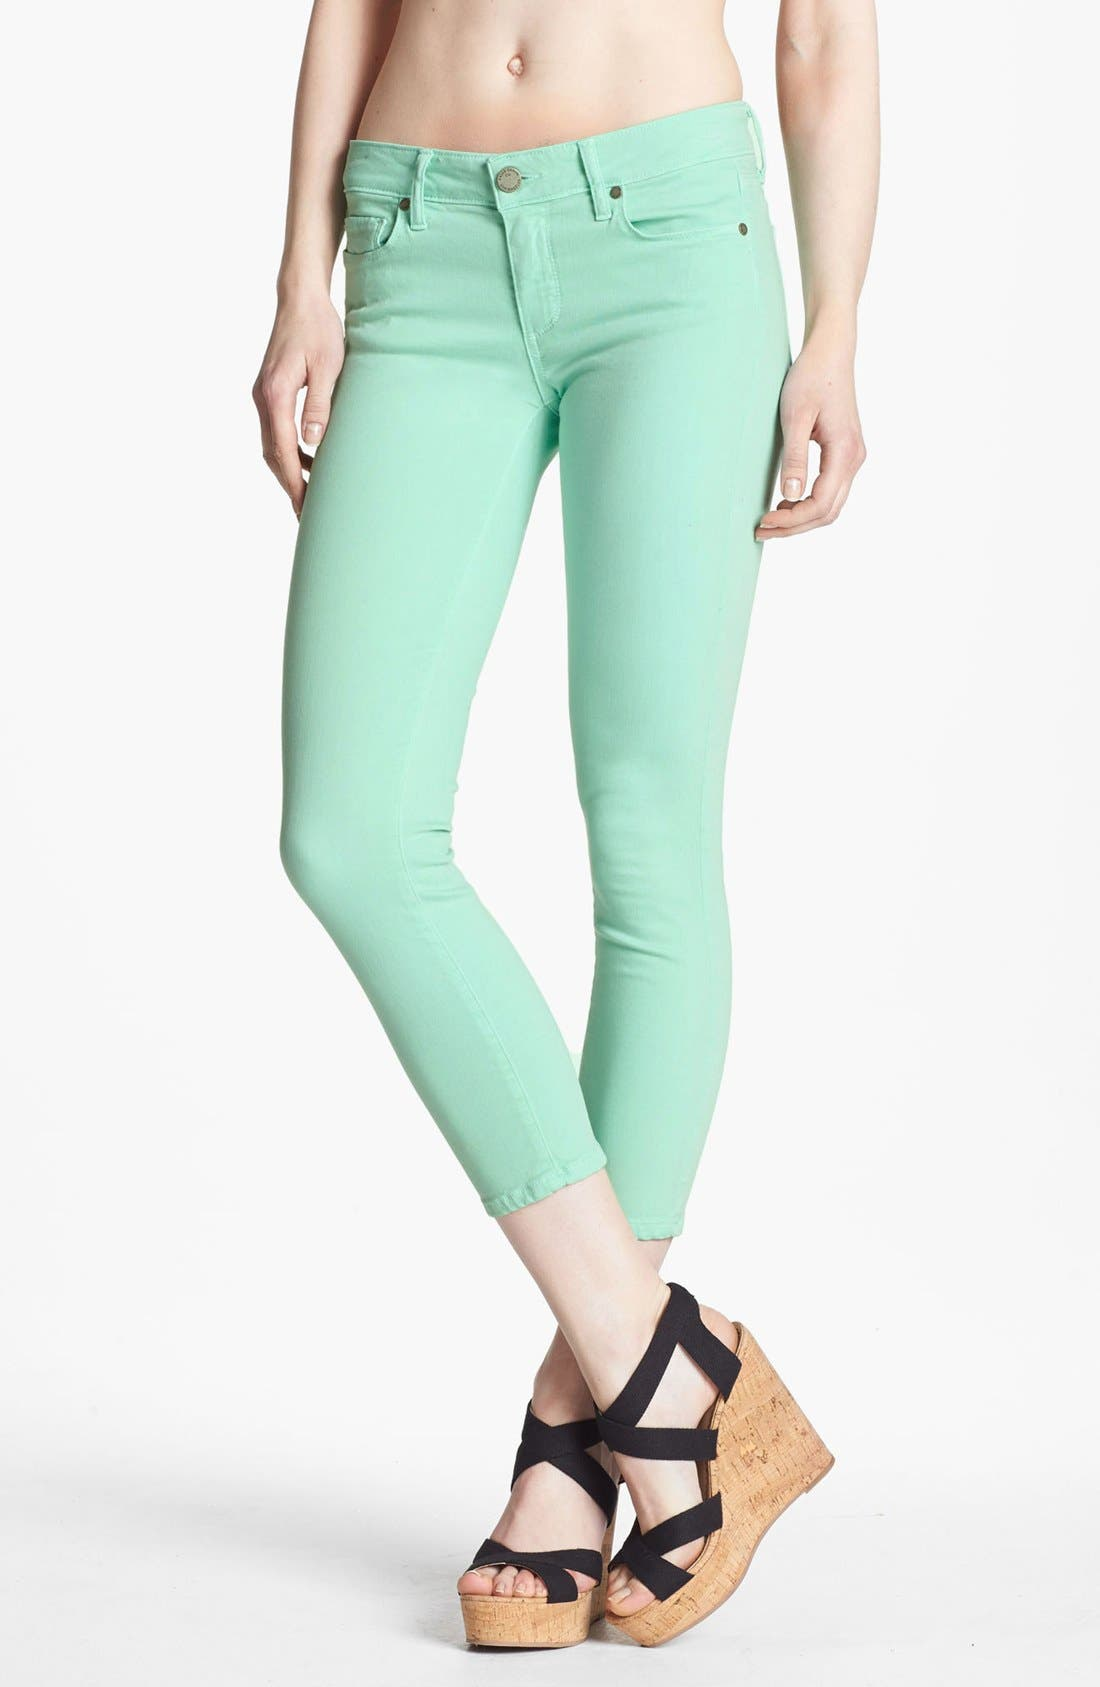 Alternate Image 1 Selected - Paige Denim 'Kylie' Crop Jeans (Glass)